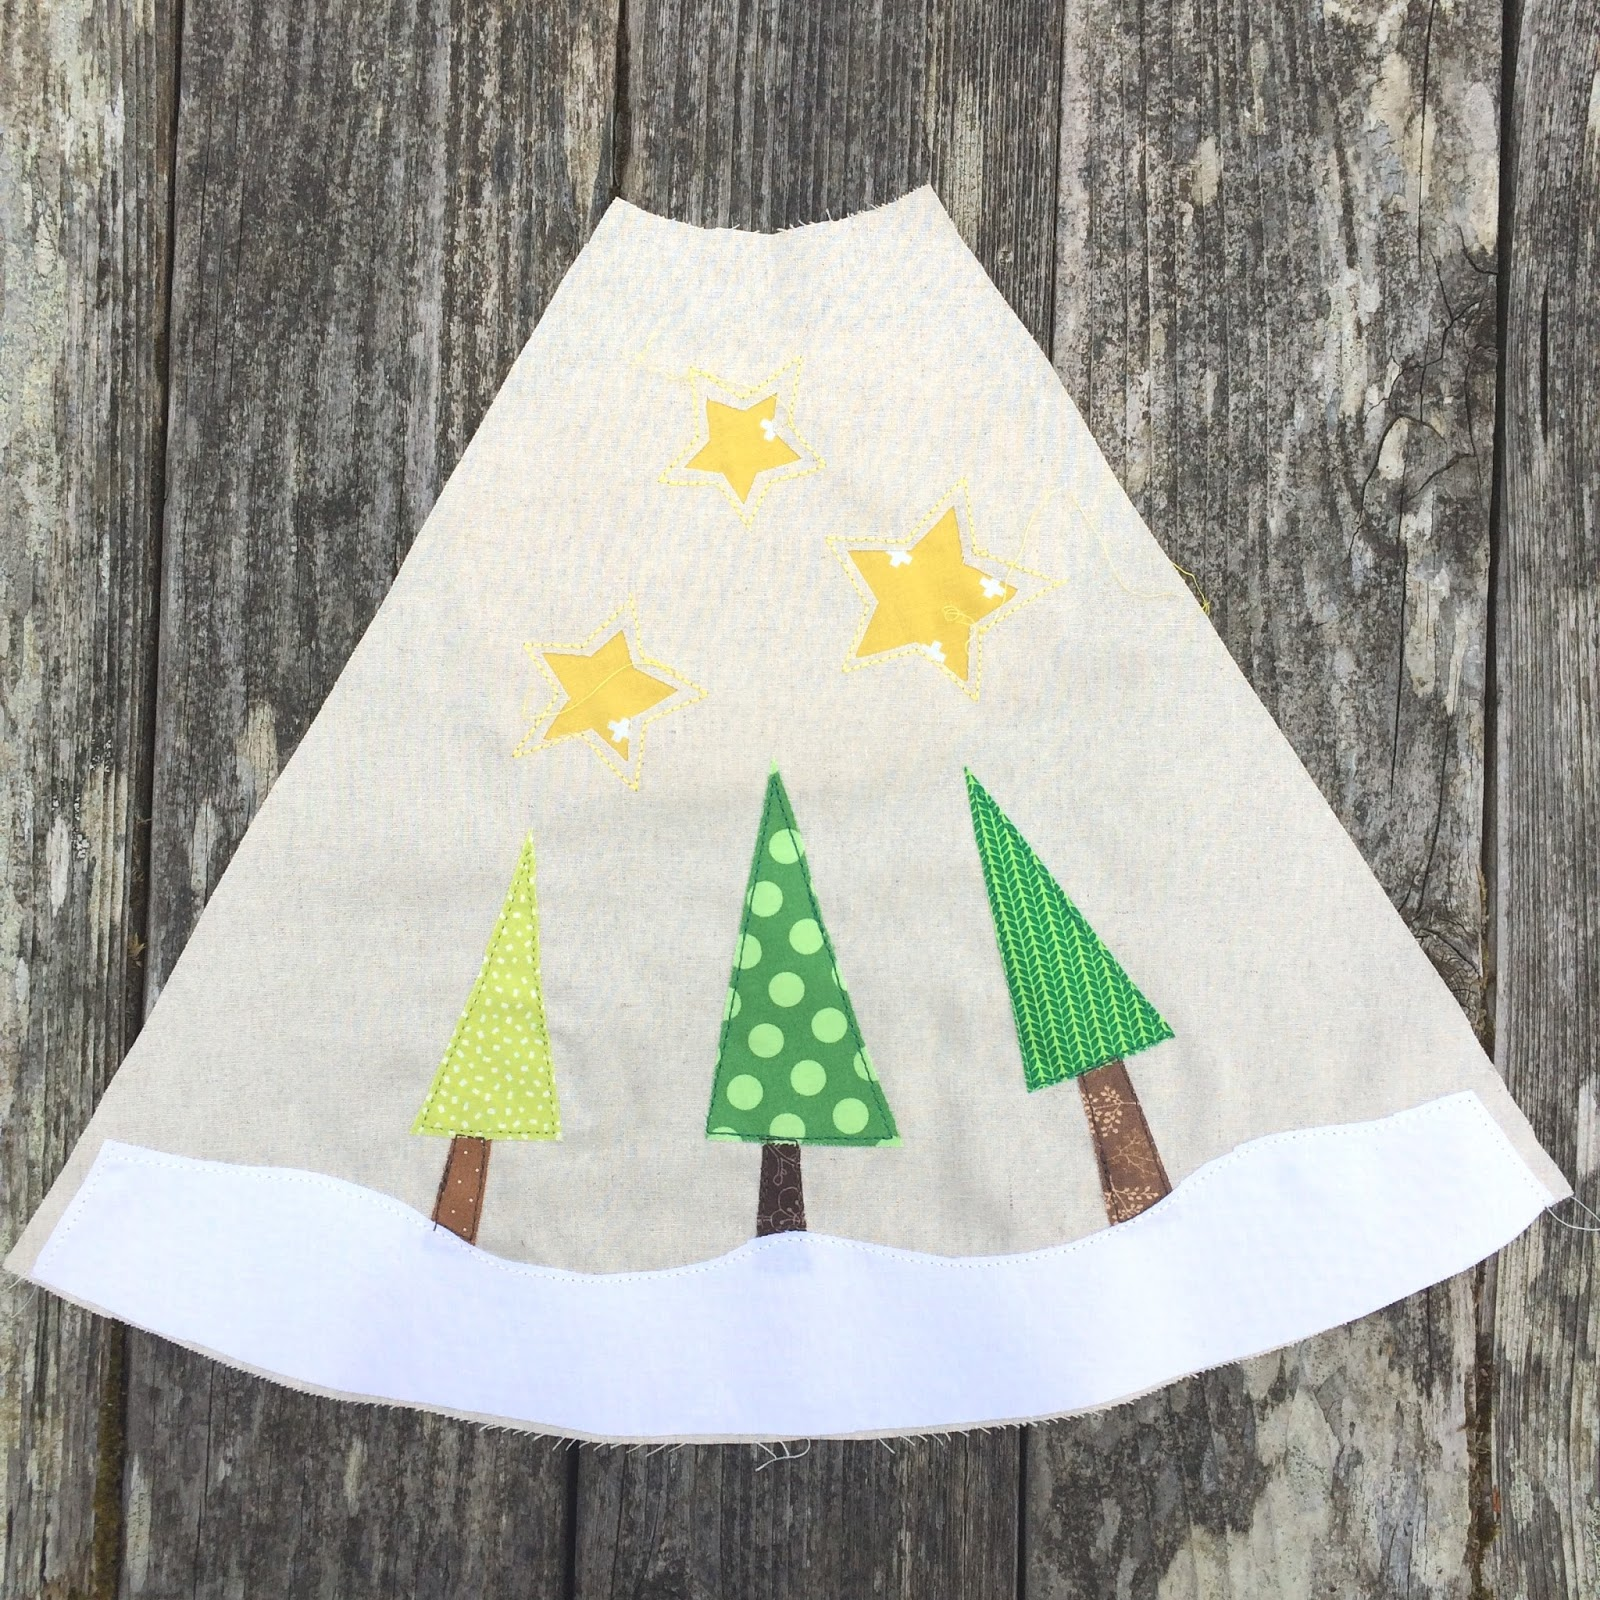 Fluffy Sheep Quilting: Christmas Tree Skirts